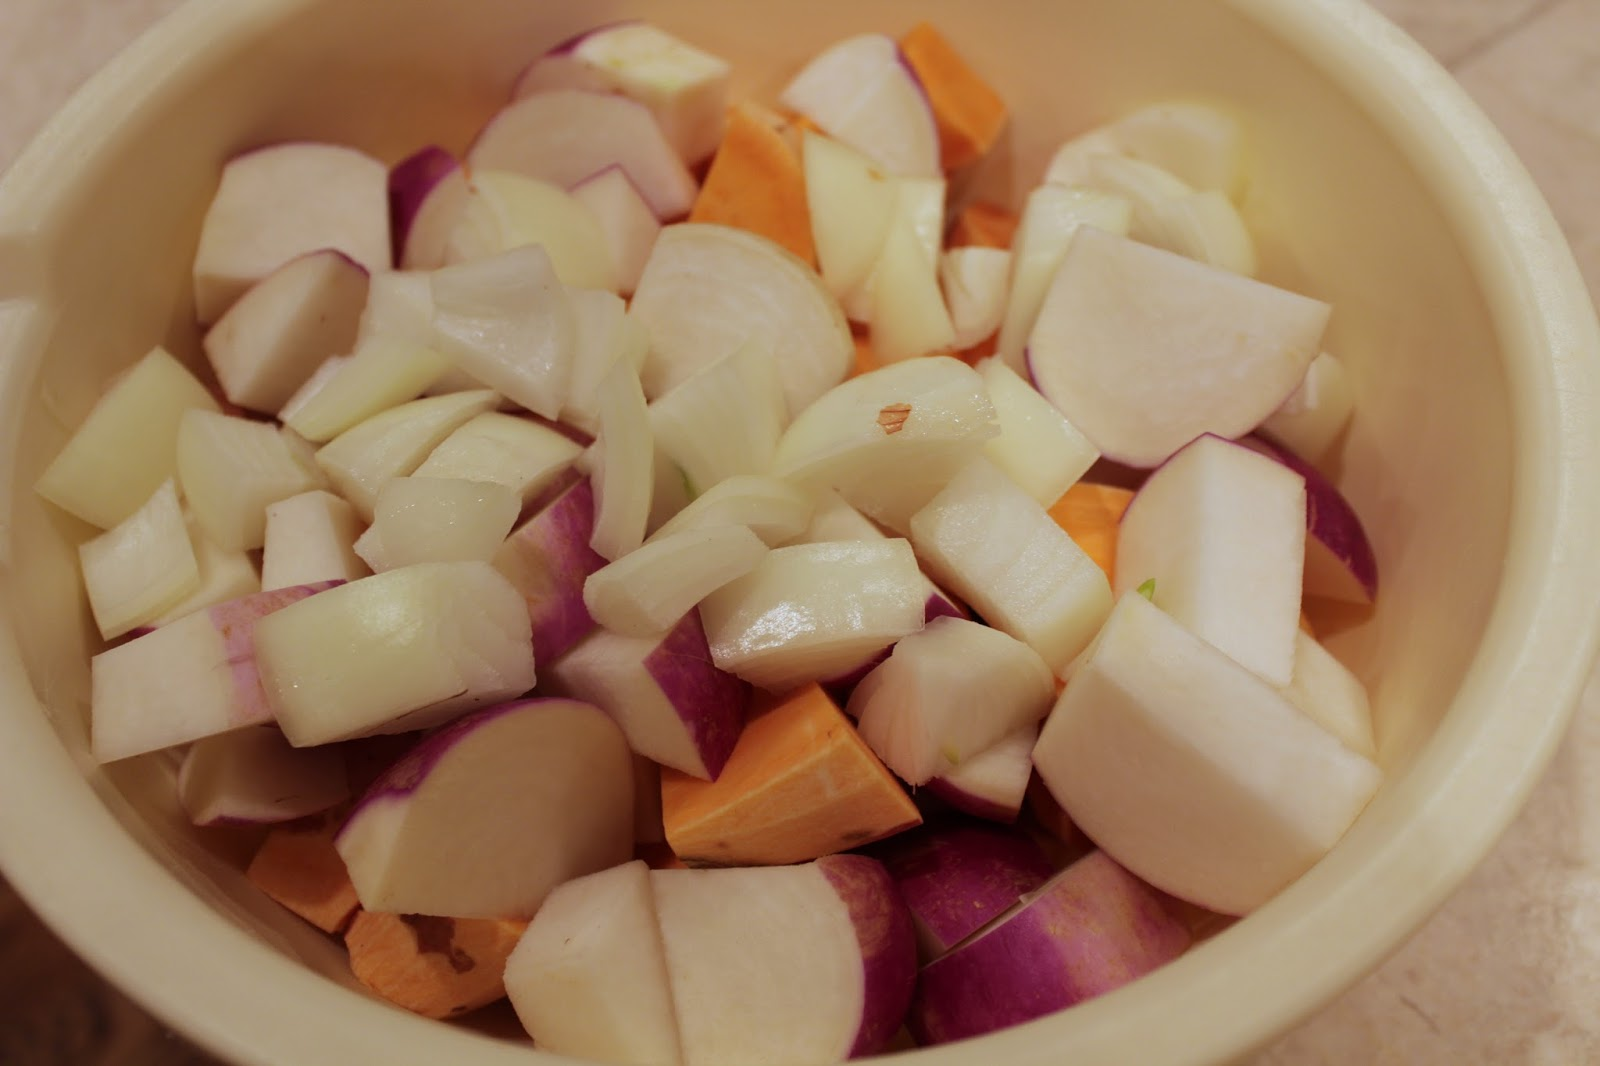 Roasted root vegetables with smokey seasoning